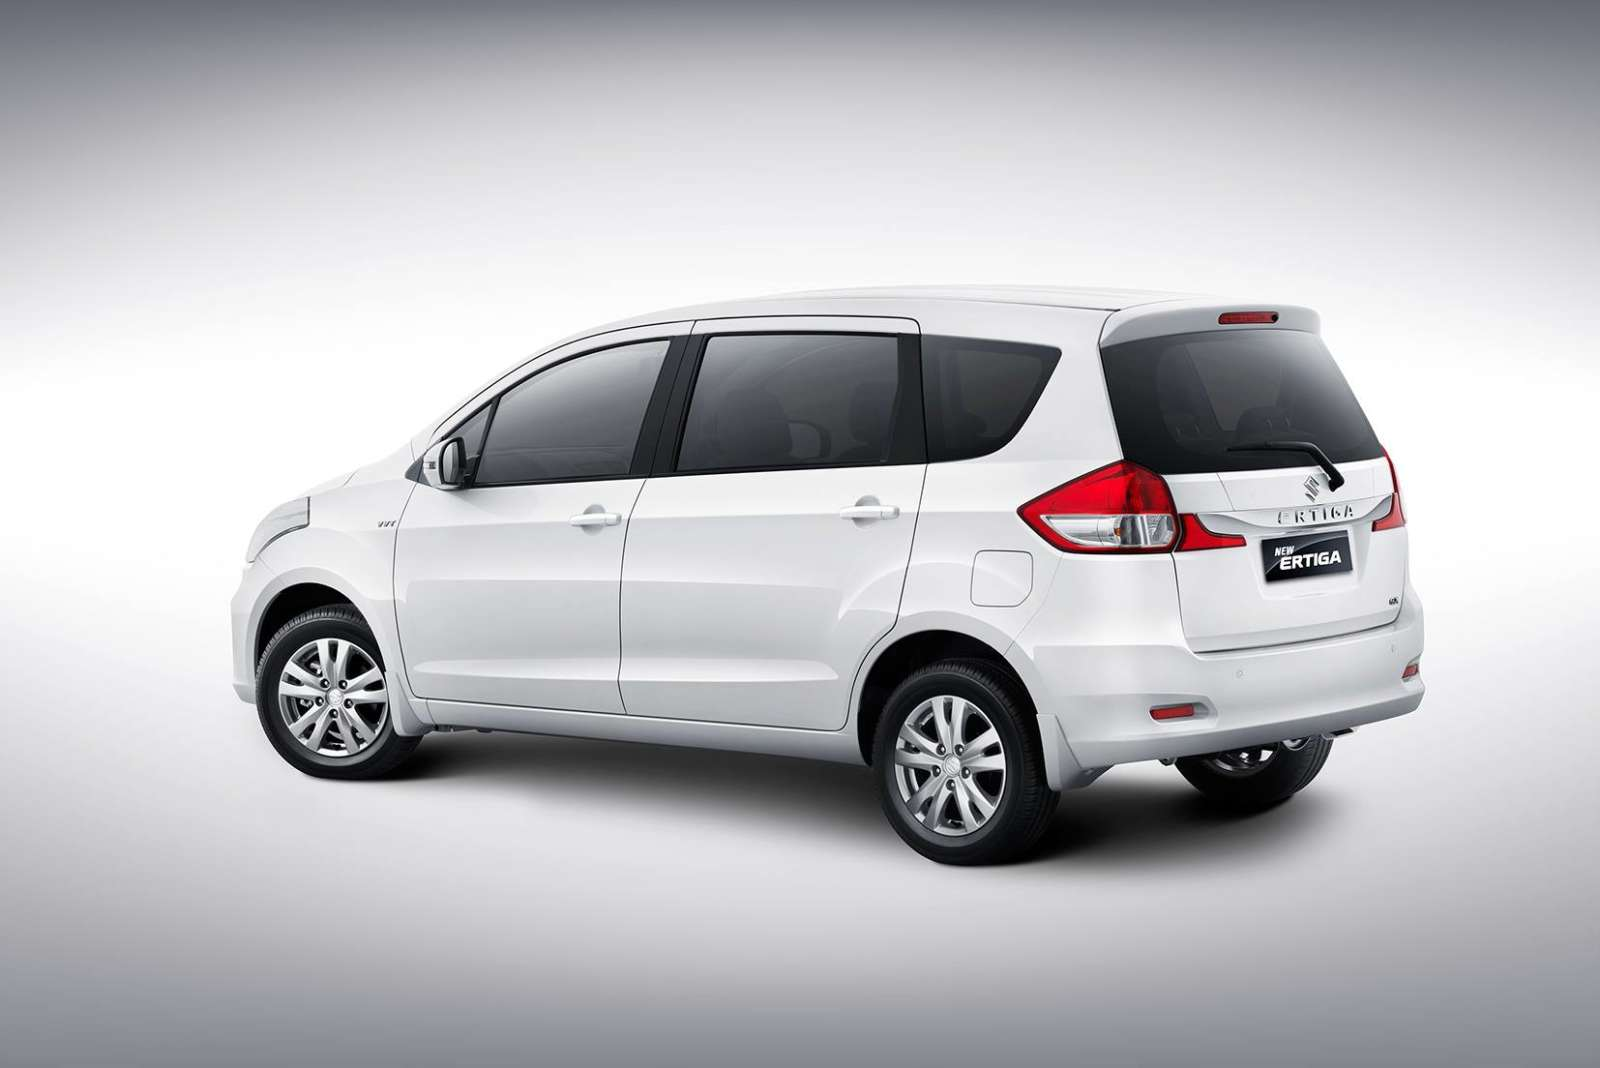 2015 suzuki ertiga maruti ertiga facelift revealed in indonesia india launch by october 2015. Black Bedroom Furniture Sets. Home Design Ideas